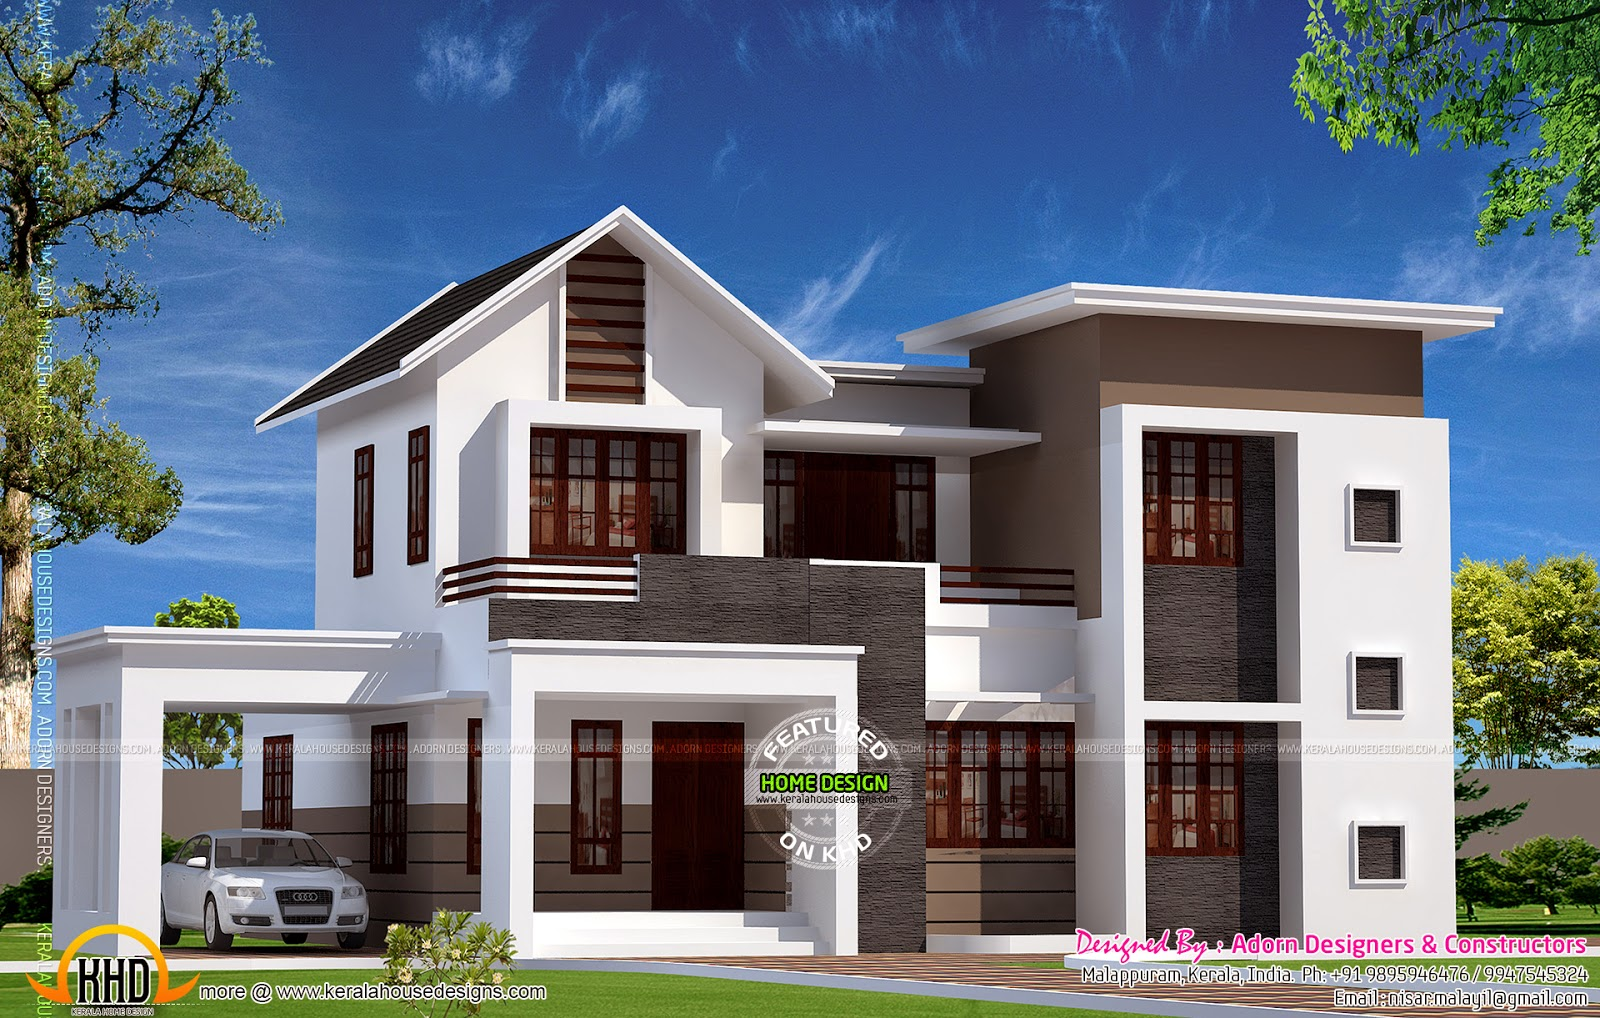 New house design in 1900 sq feet kerala home design and for Award winning house designs in india